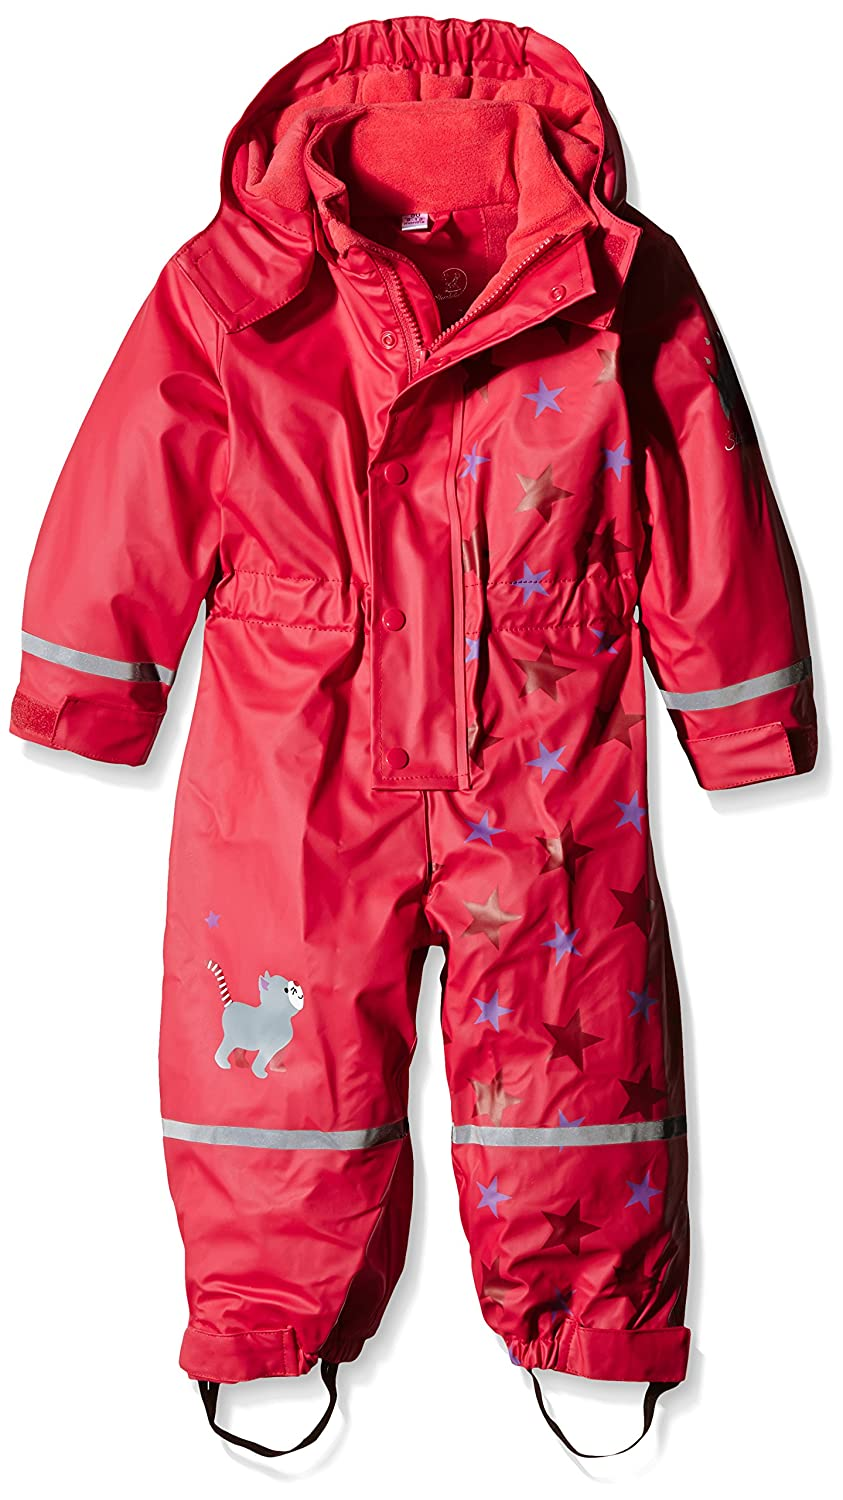 Sterntaler Unisex Baby Allover Starred Rain Trousers Red (804) 5651522